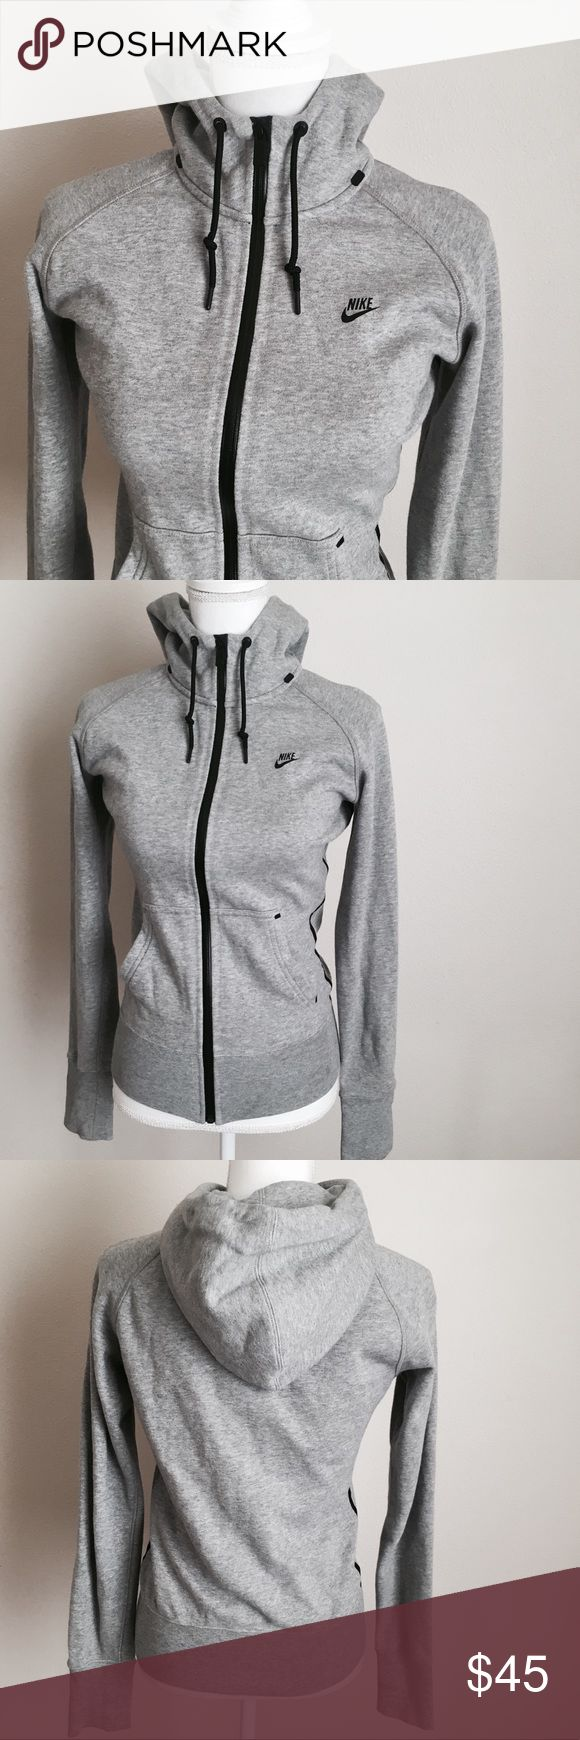 Nike Hoodie ✨ Heather gray Nike zip up with high neck and drawstring hood - Structured flattering fit - Black details ✨ Nike Sweaters